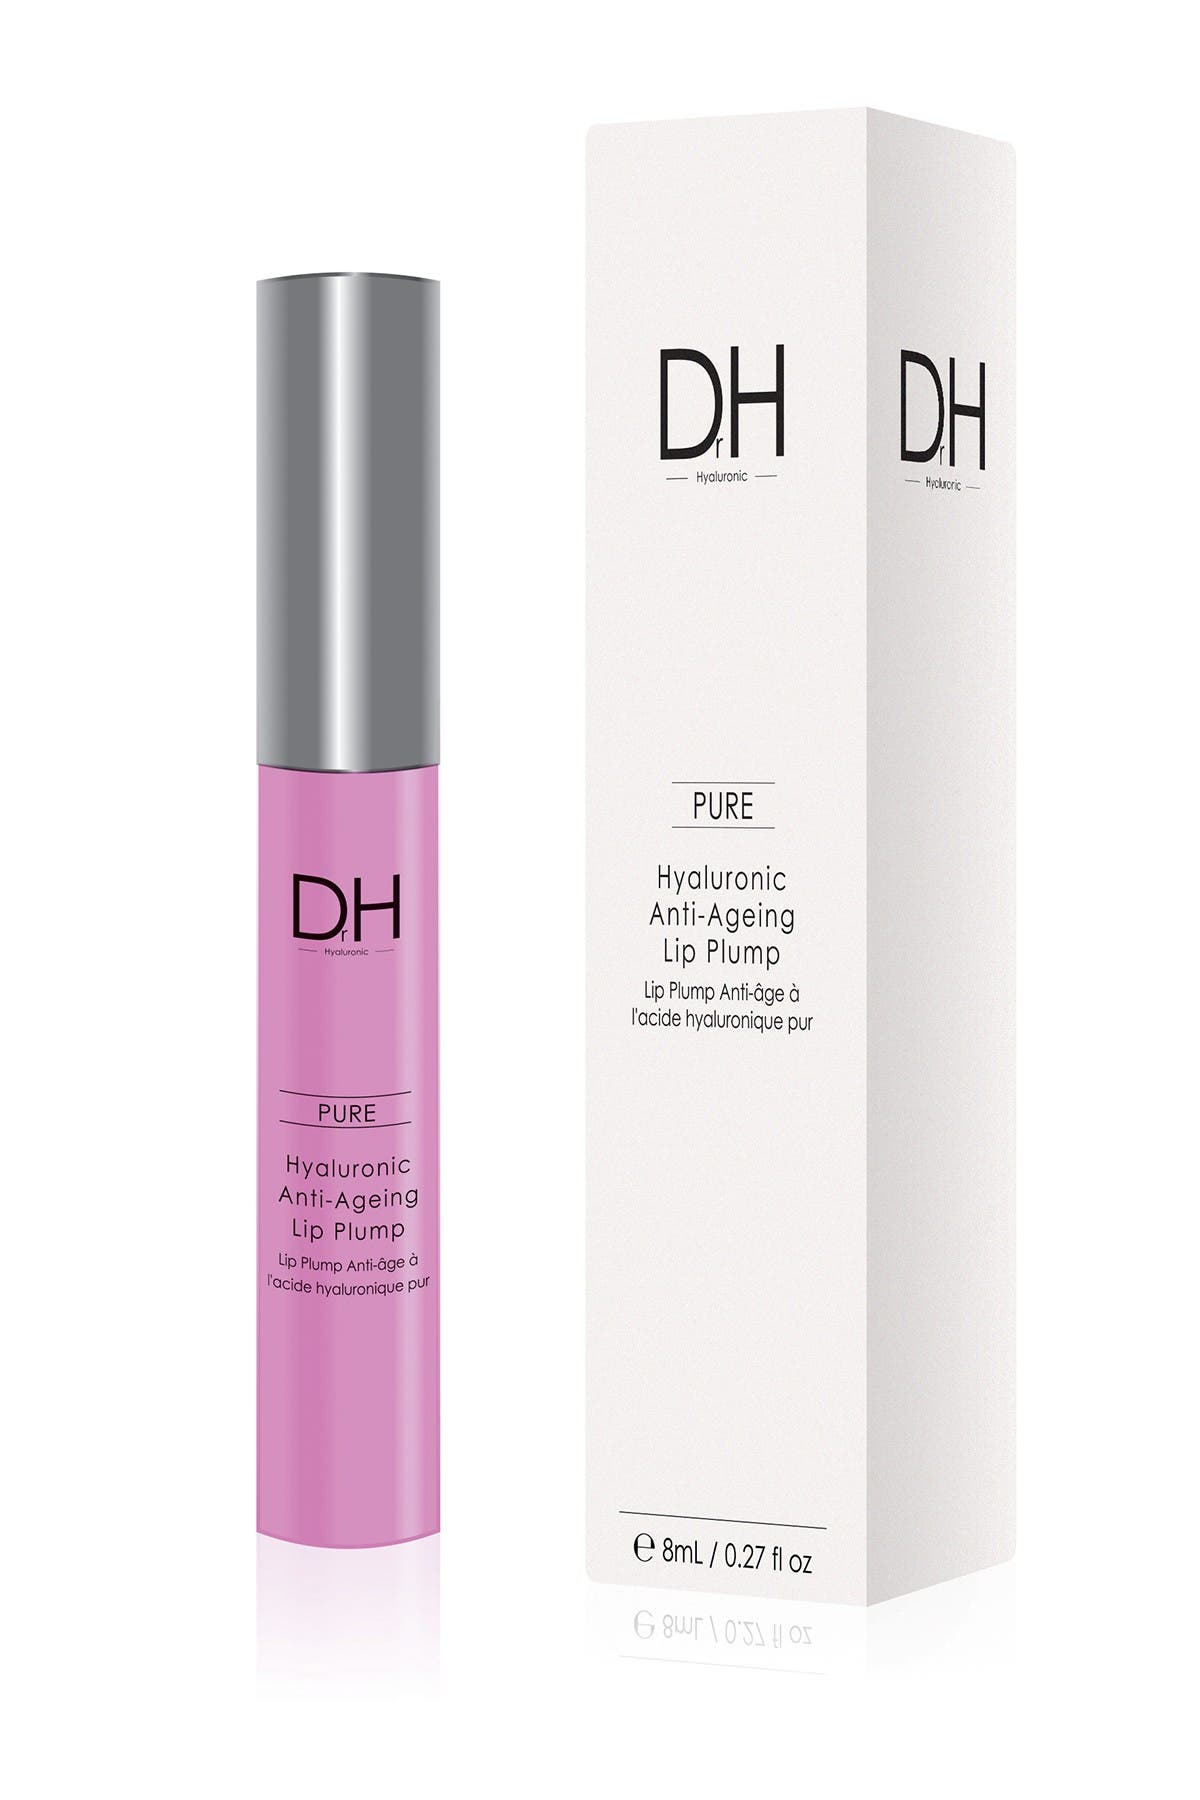 Image of skinChemists Dr. H Hyaluronic Anti-Aging Lip Plumper